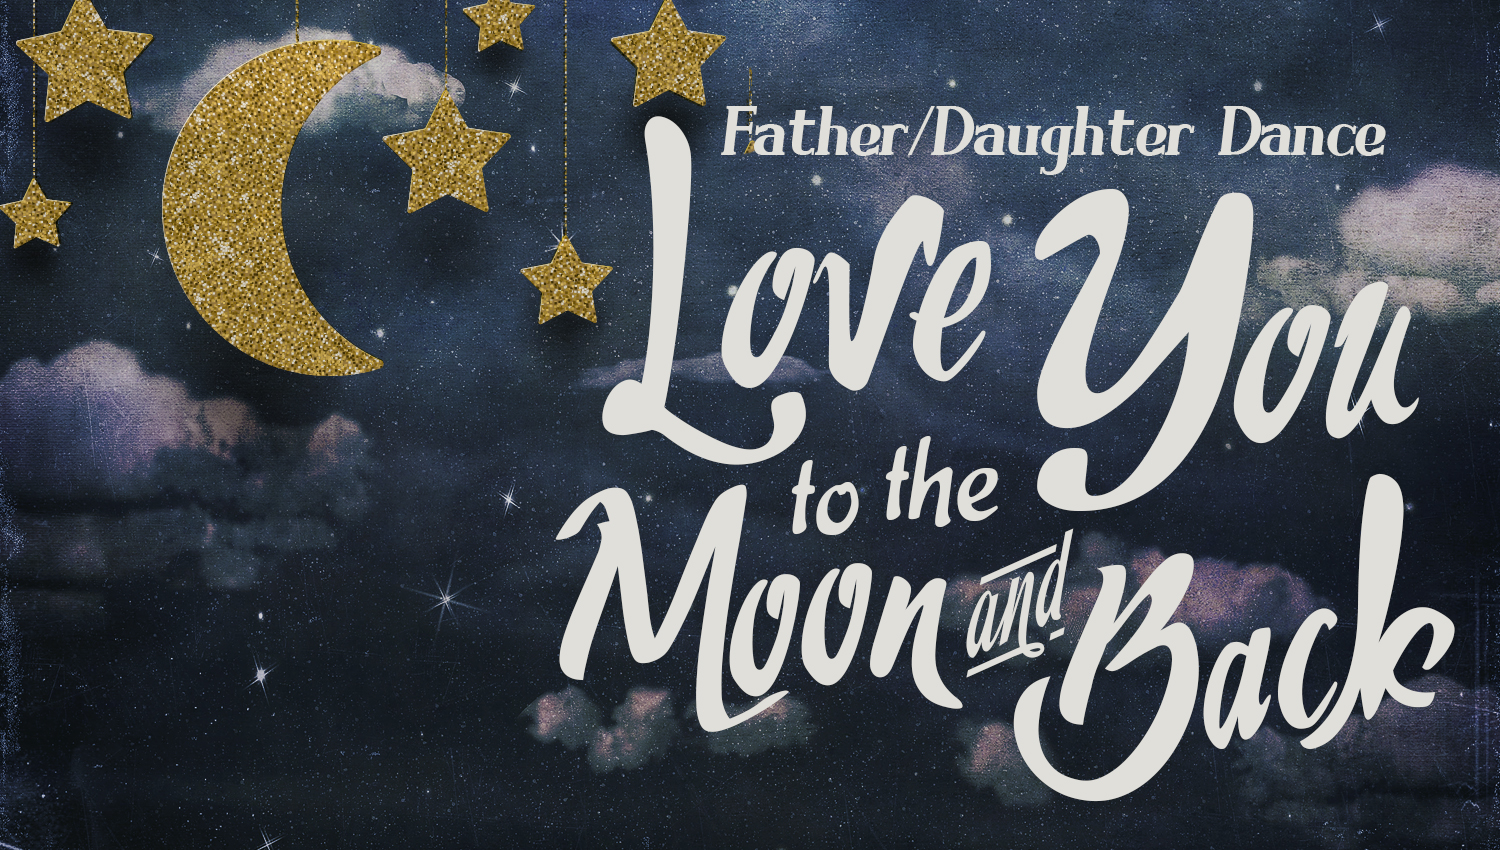 Love You To The Moon And Back :: Father/Daughter Dance